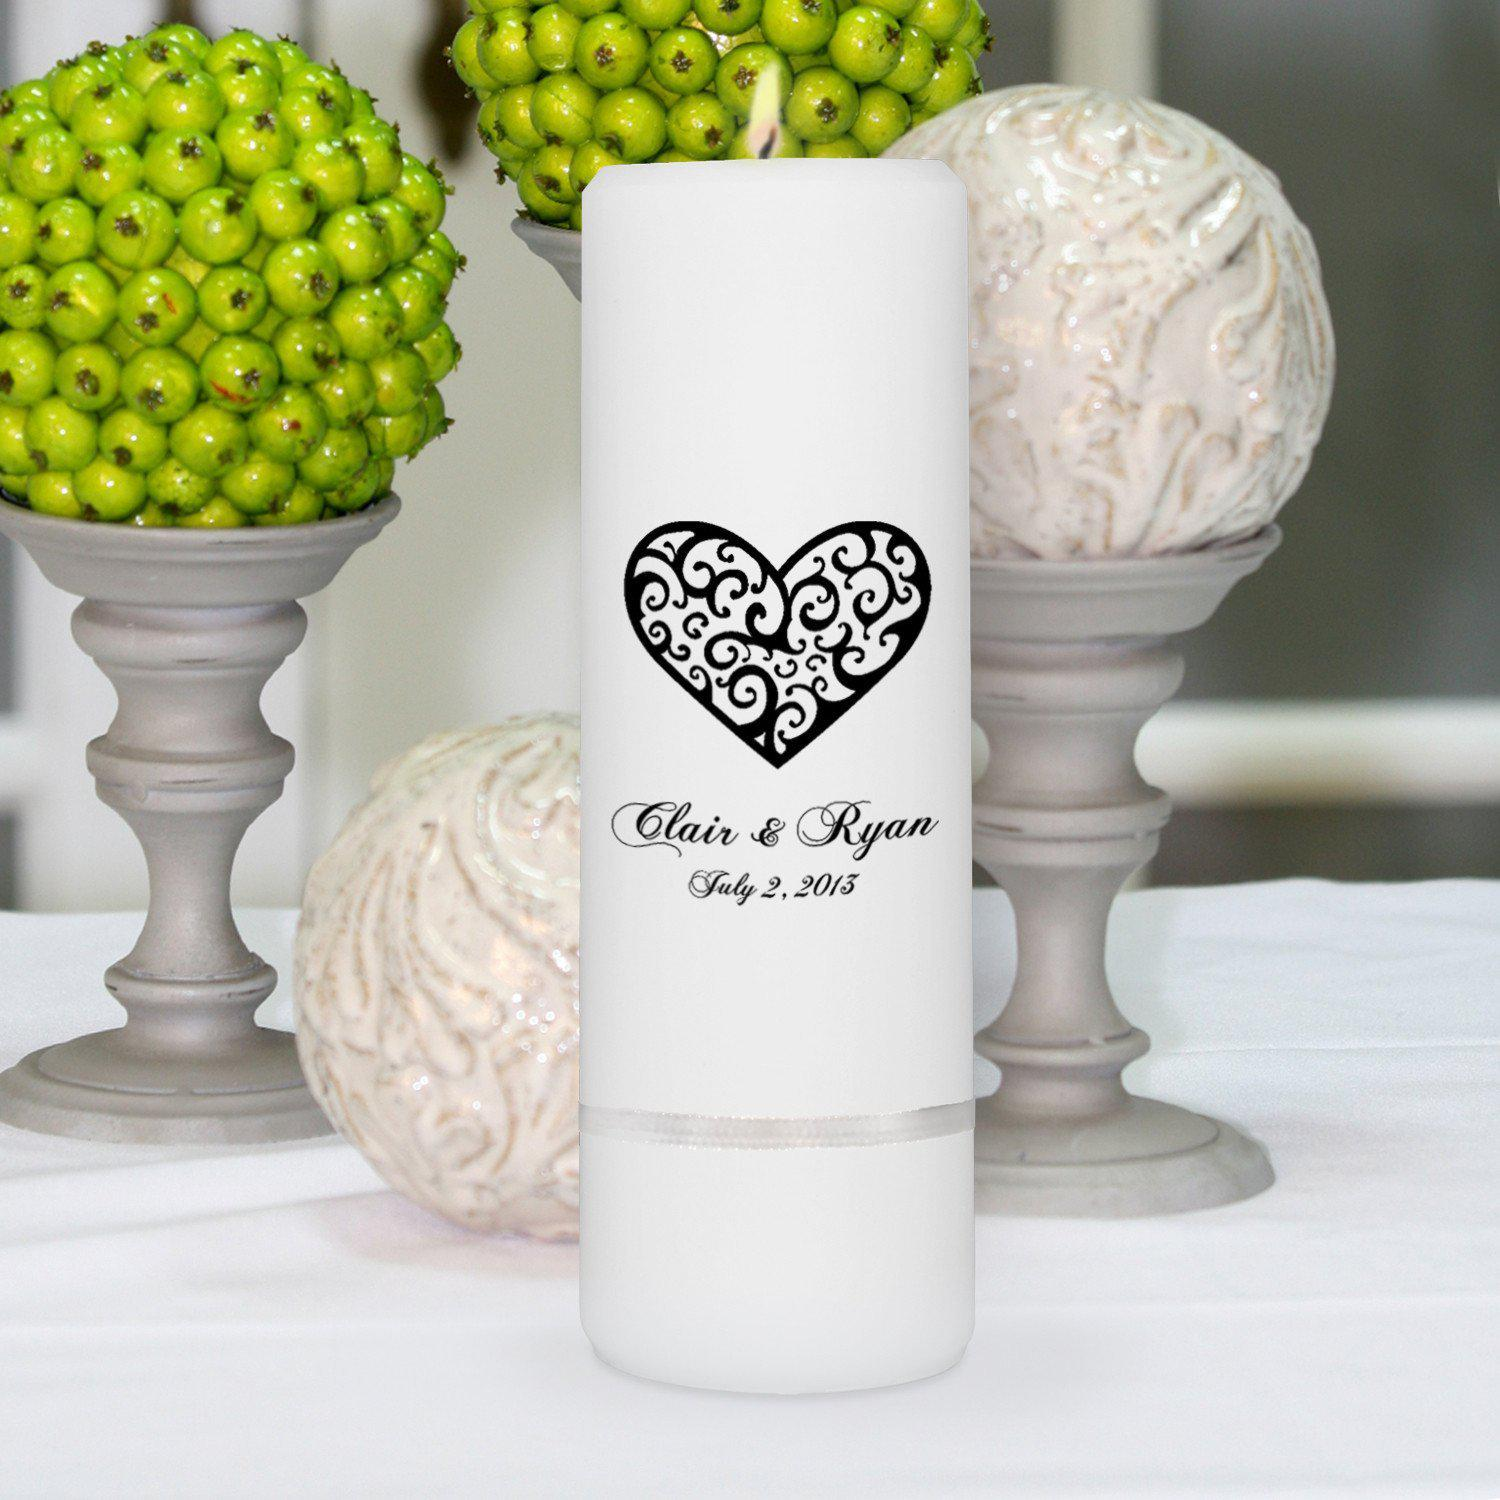 Personalized-Wedding-Candle-Unity-Candle-Personalized-3x-9-Candle